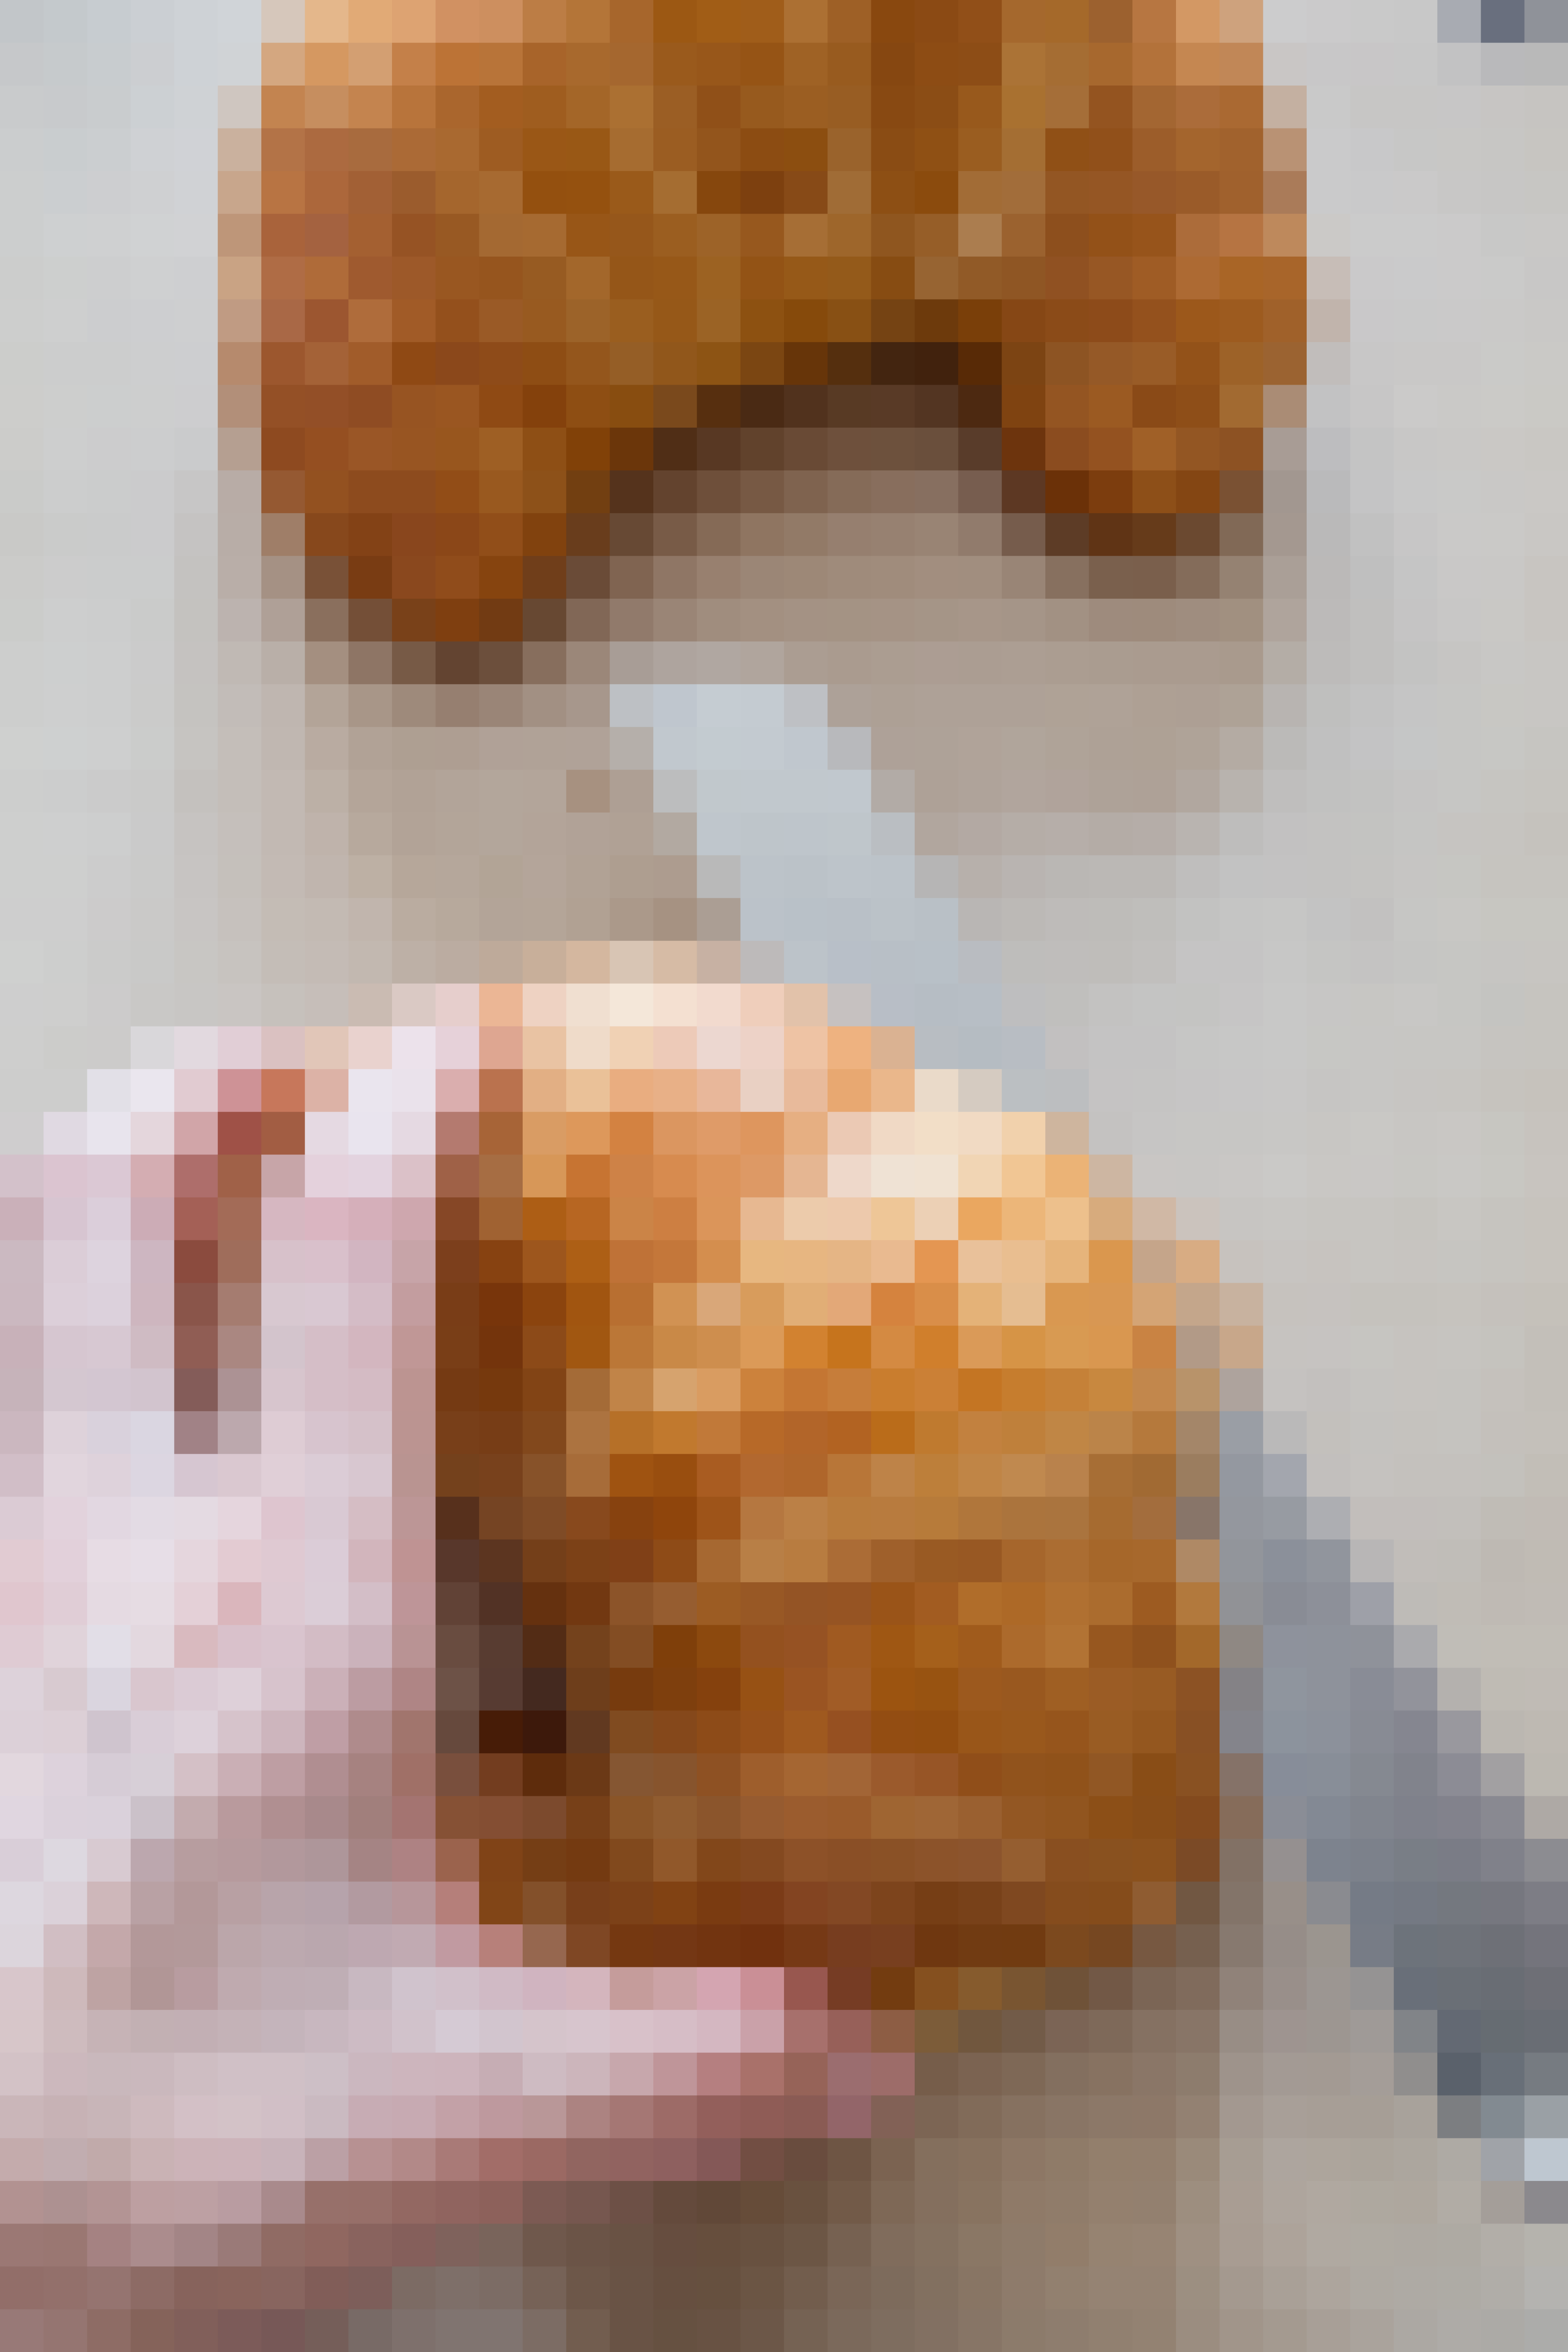 How To Make Almond Croissants (the Easy Way): gallery image 2